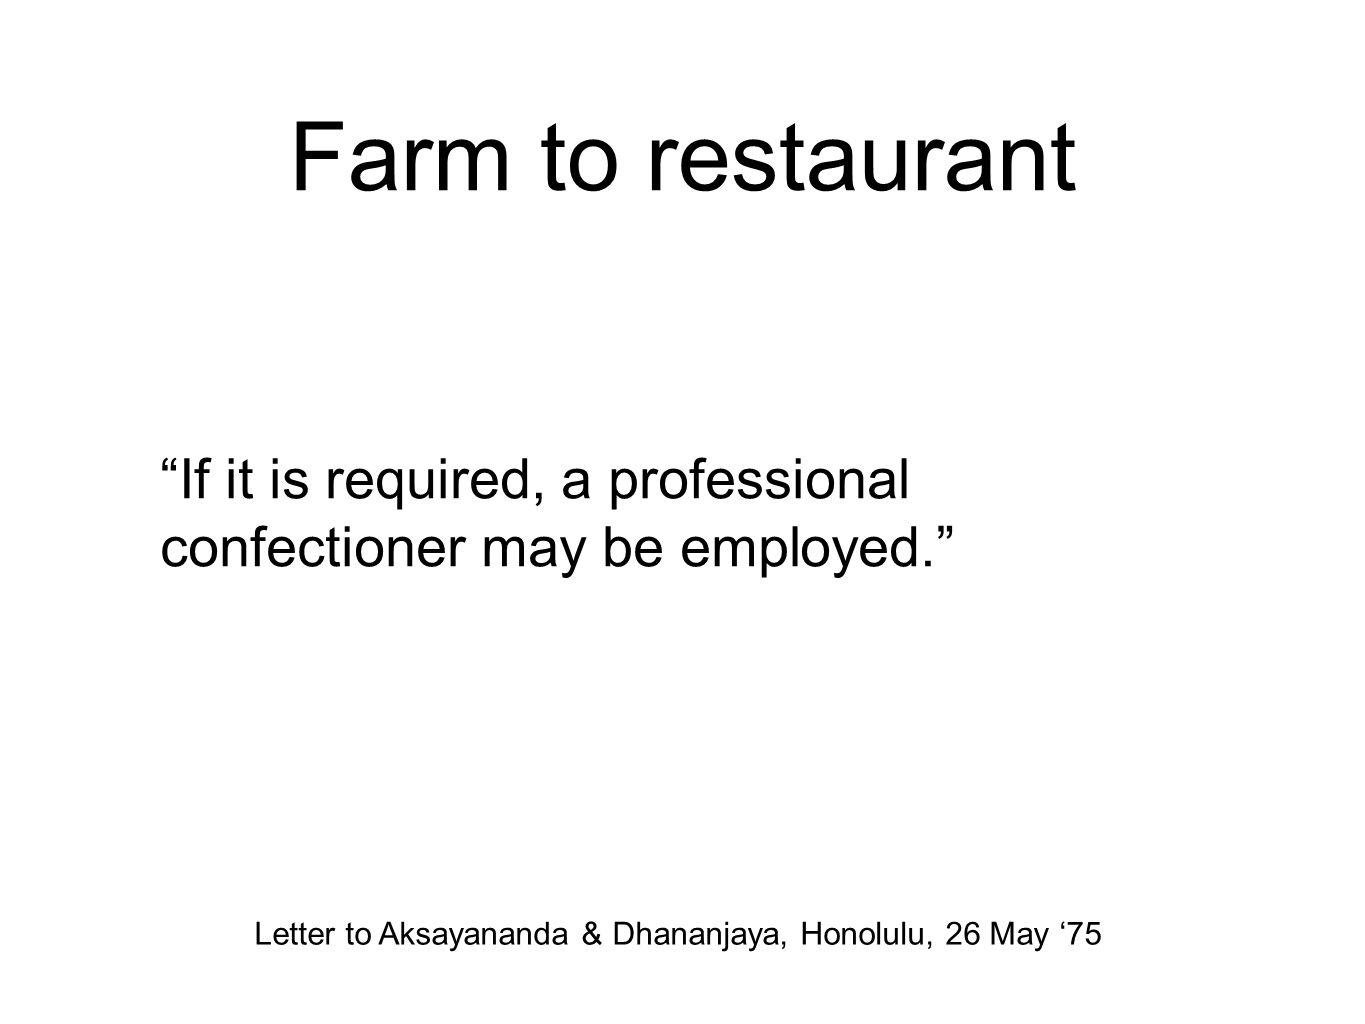 Farm to restaurant If it is required, a professional confectioner may be employed. Letter to Aksayananda & Dhananjaya, Honolulu, 26 May '75